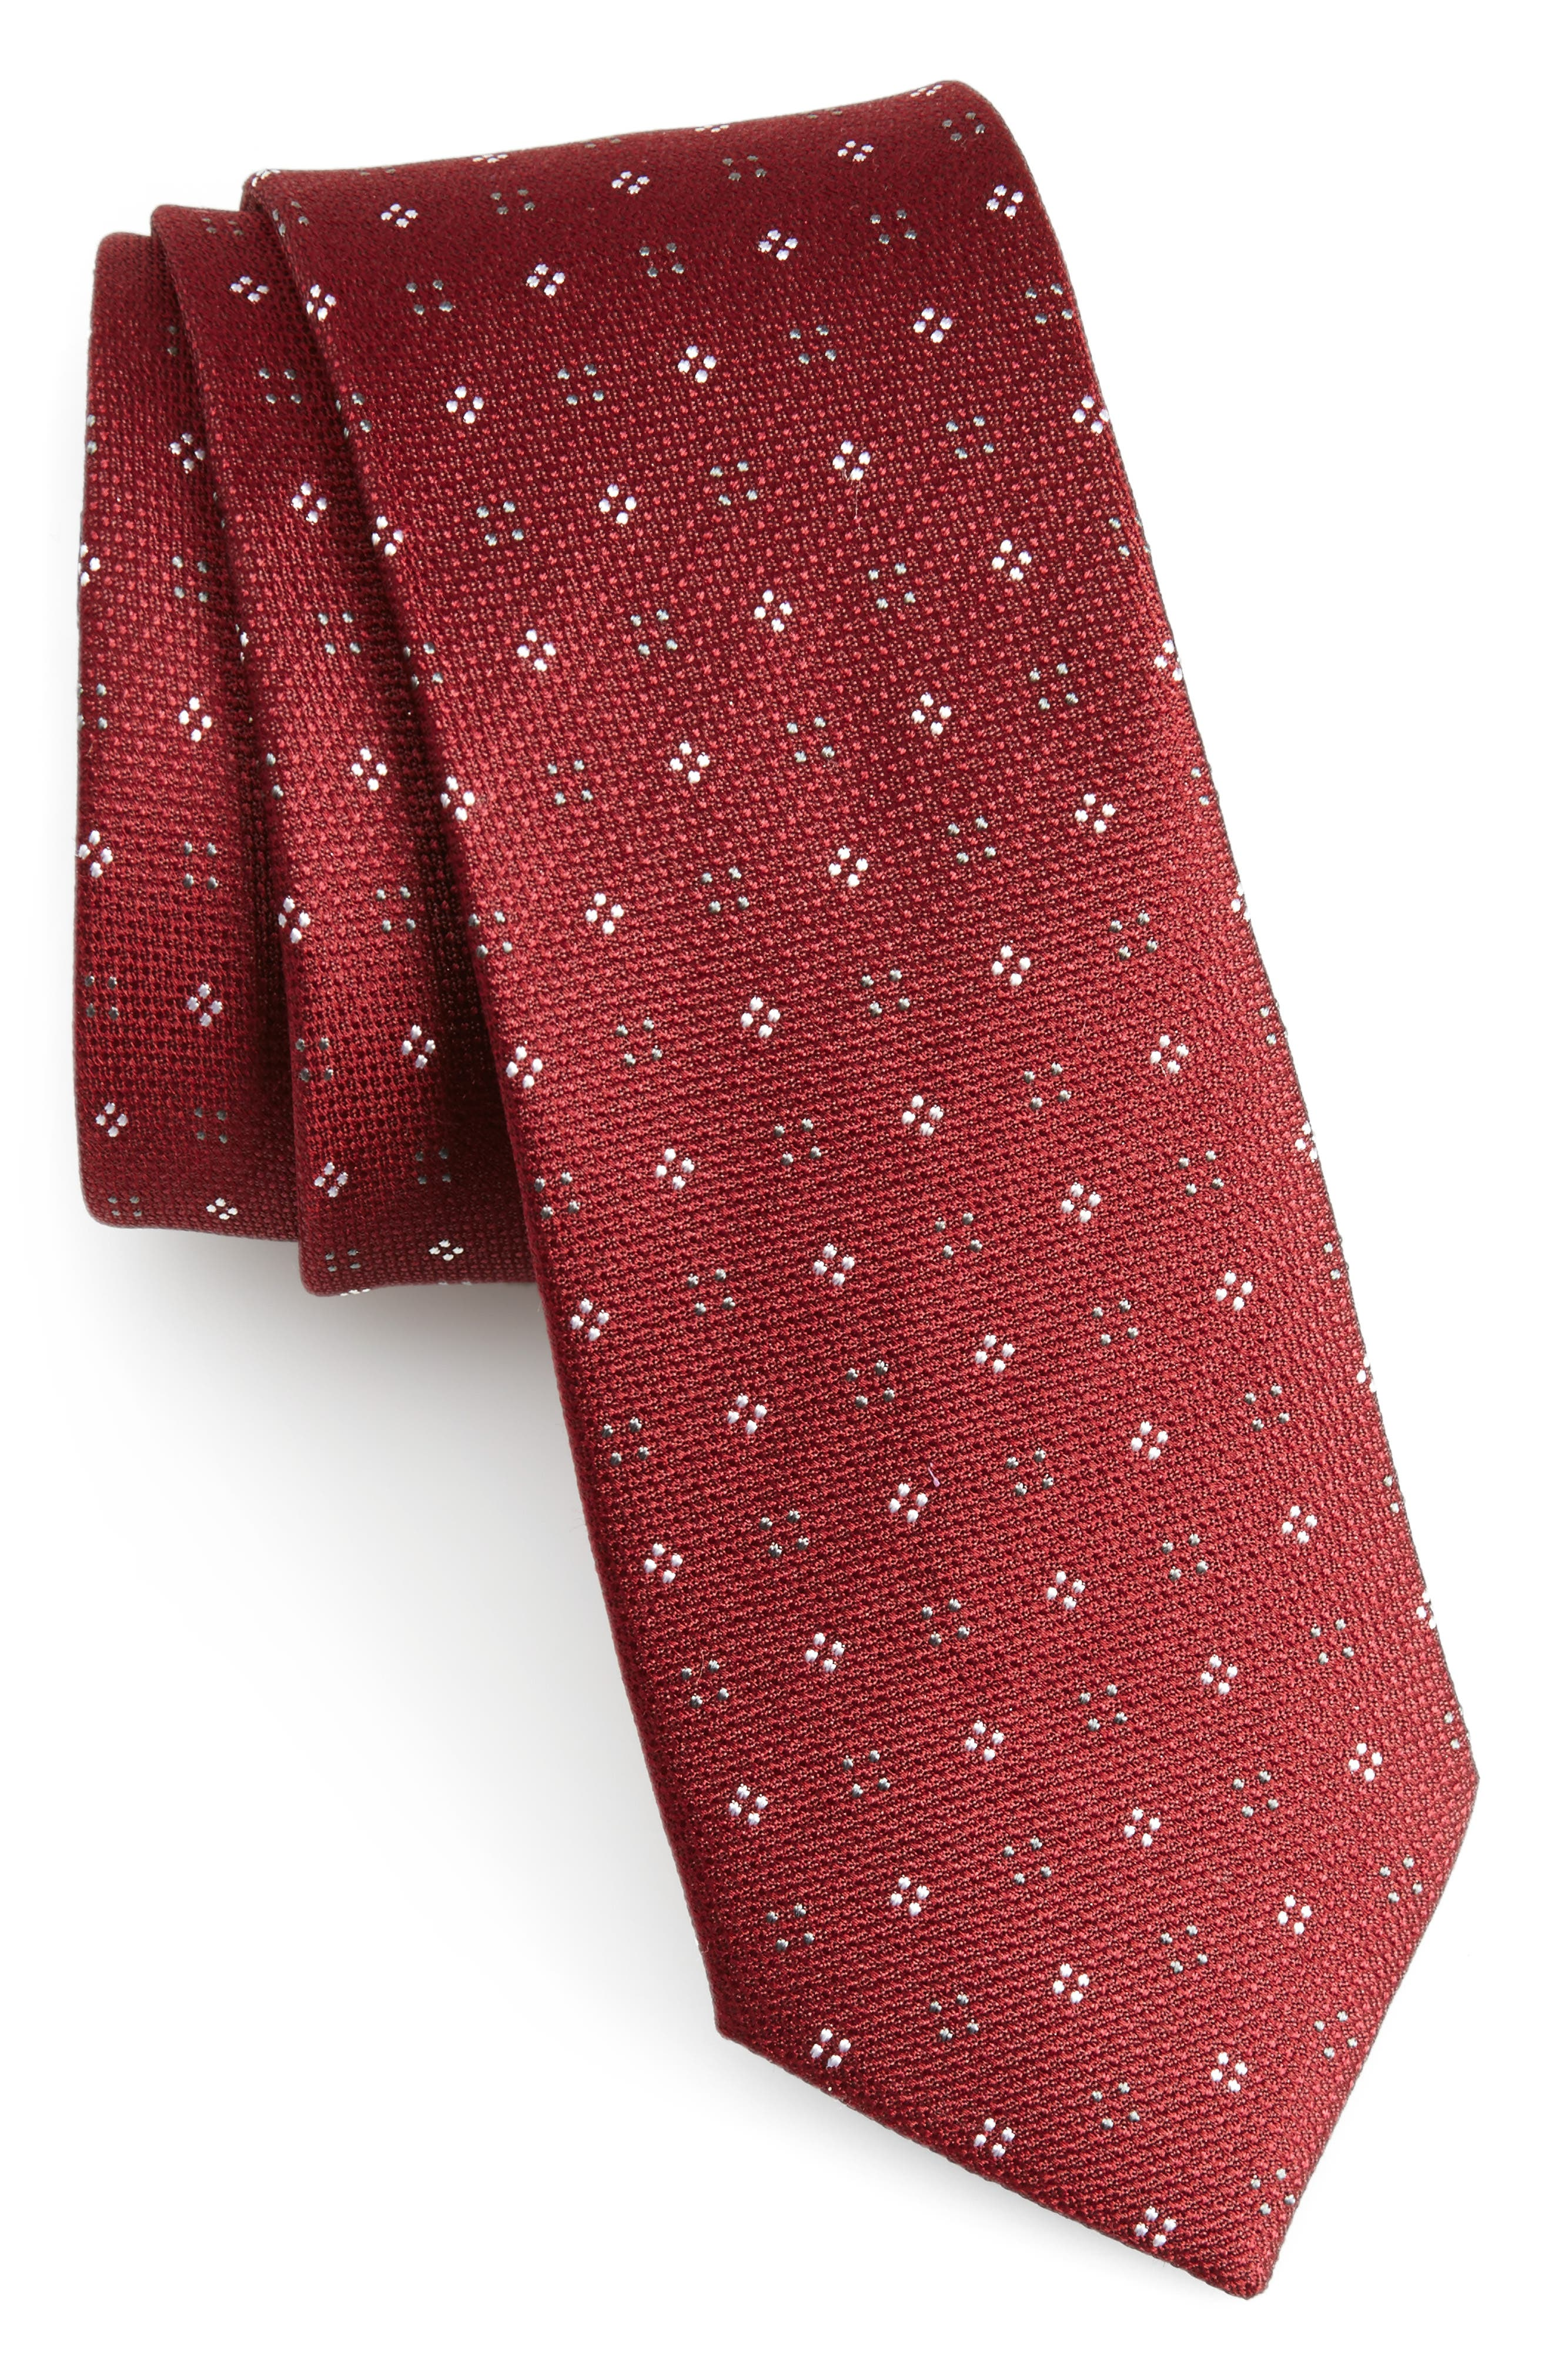 Bond Geos Silk Skinny Tie,                             Main thumbnail 1, color,                             Burgundy